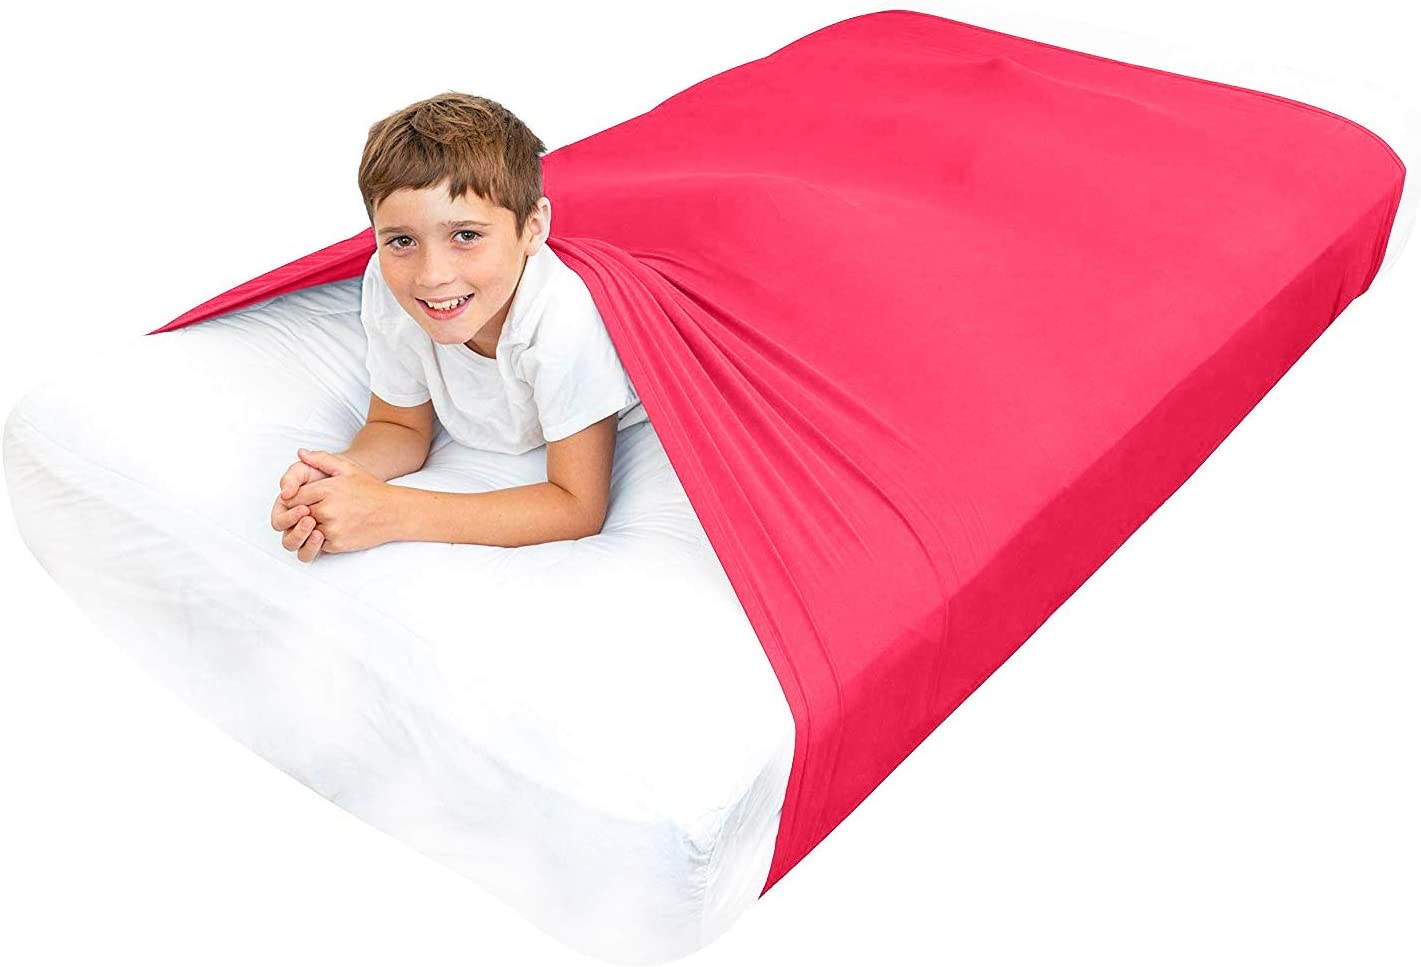 Special Supplies Sensory Bed Sheet for Kids Compression Alternative to Weighted Blankets - Breathable, Stretchy - Cool, Comfortable Sleeping Bedding (Red, Queen)